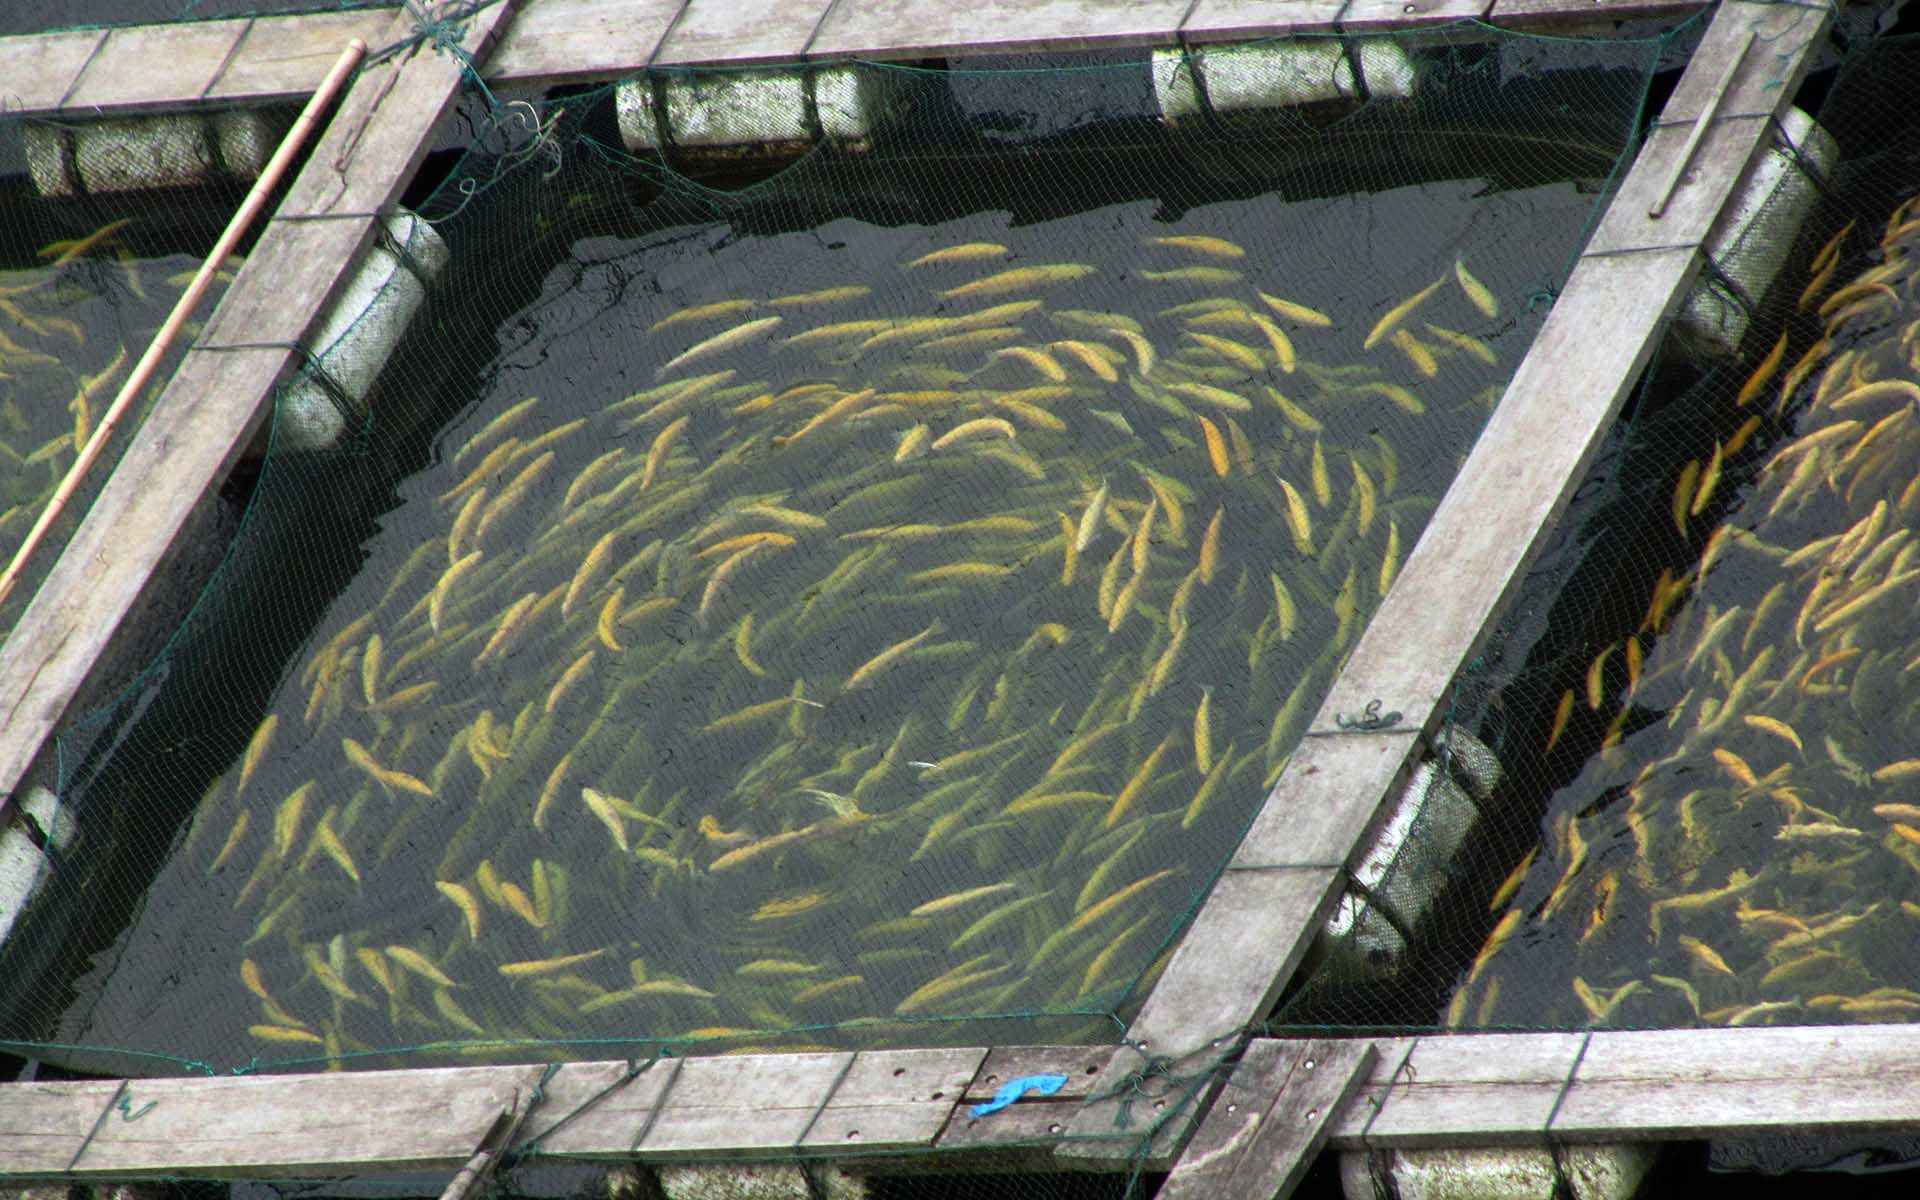 Canada's Sustainable Bitcoin Mining Used To Farm Fish And Crops